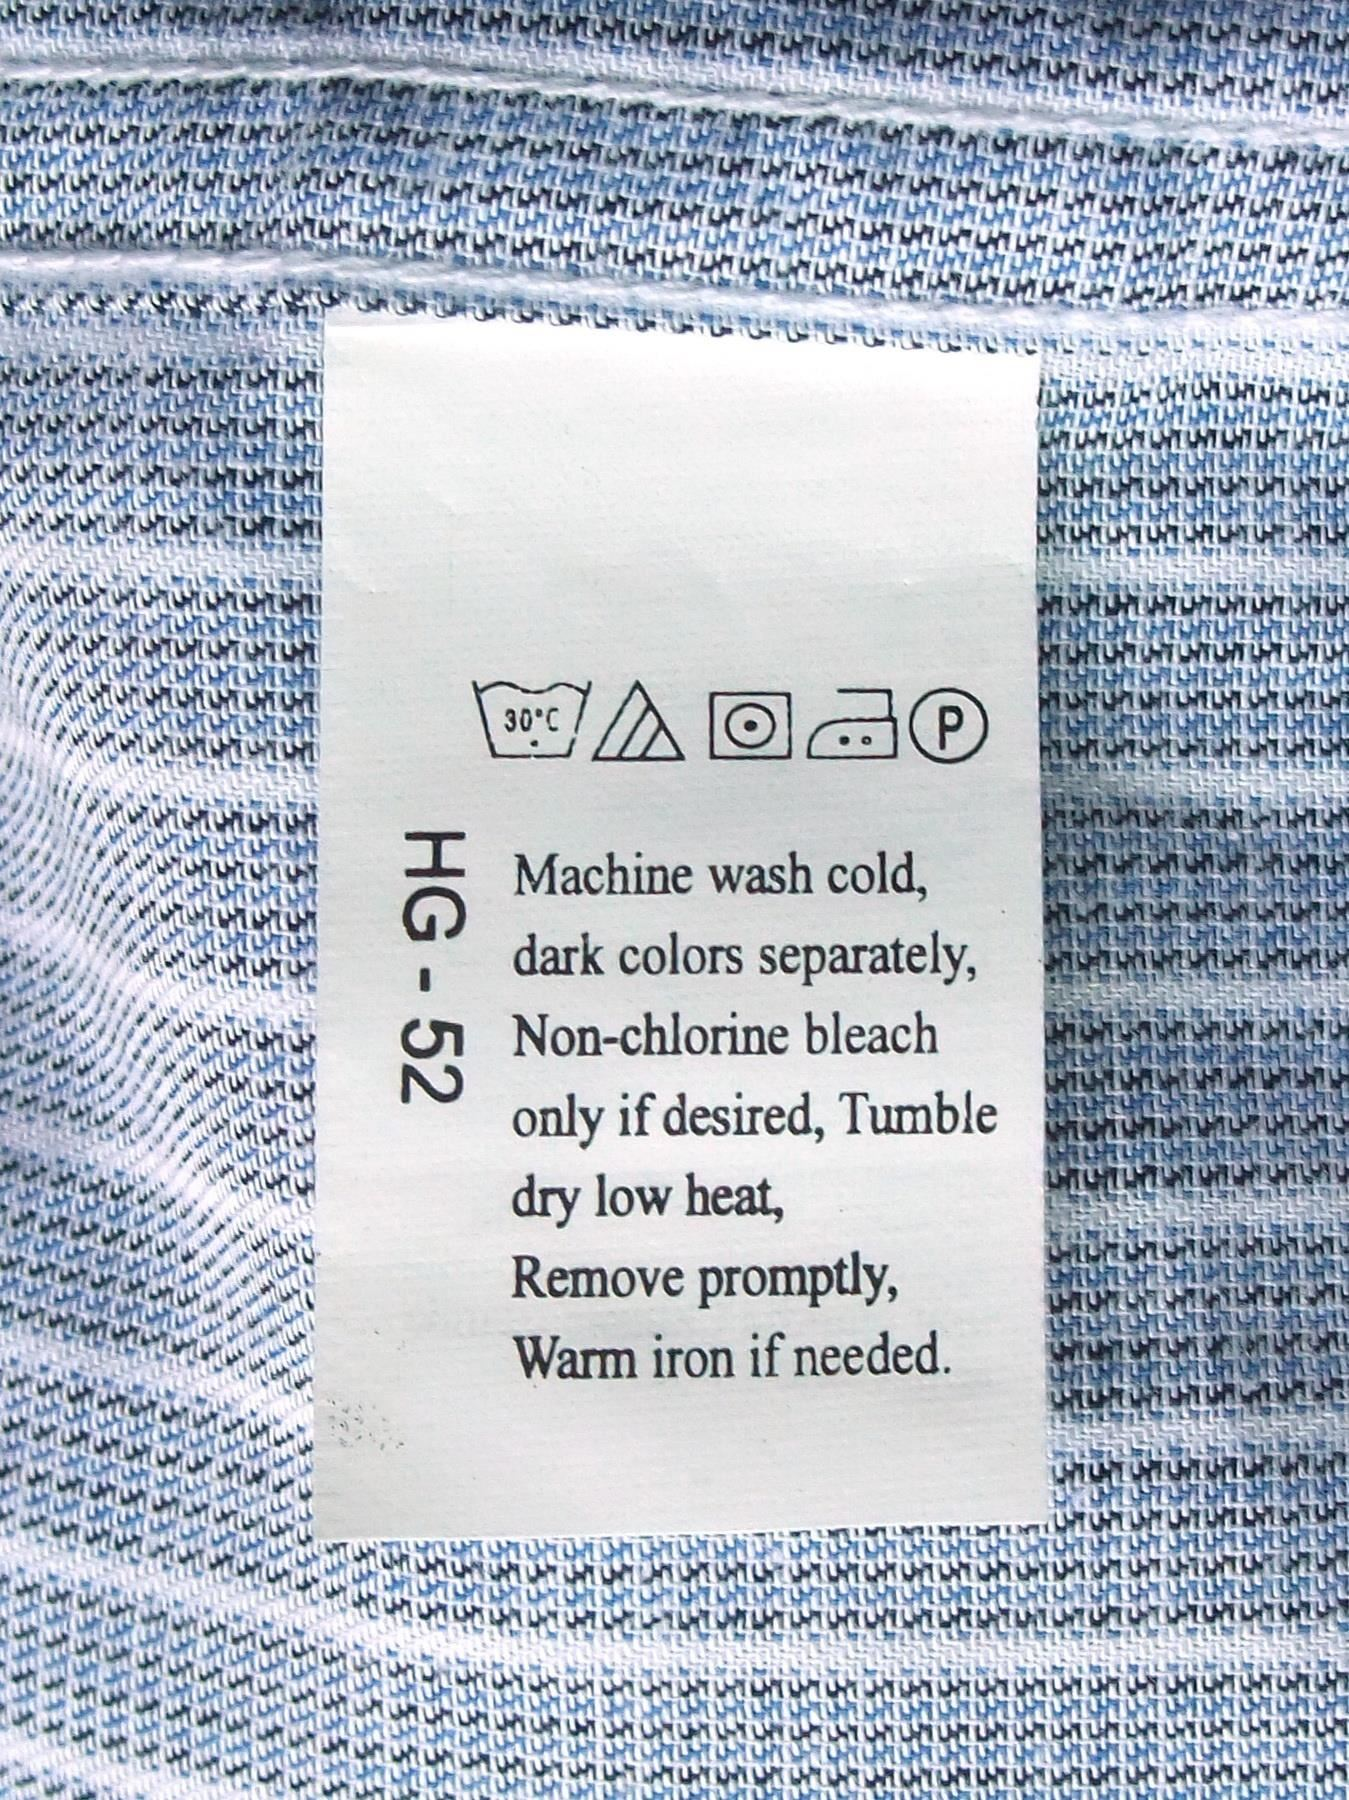 The Secret to Washing Your 'Dry Clean' Clothes — Without Going to the Dry Cleaner